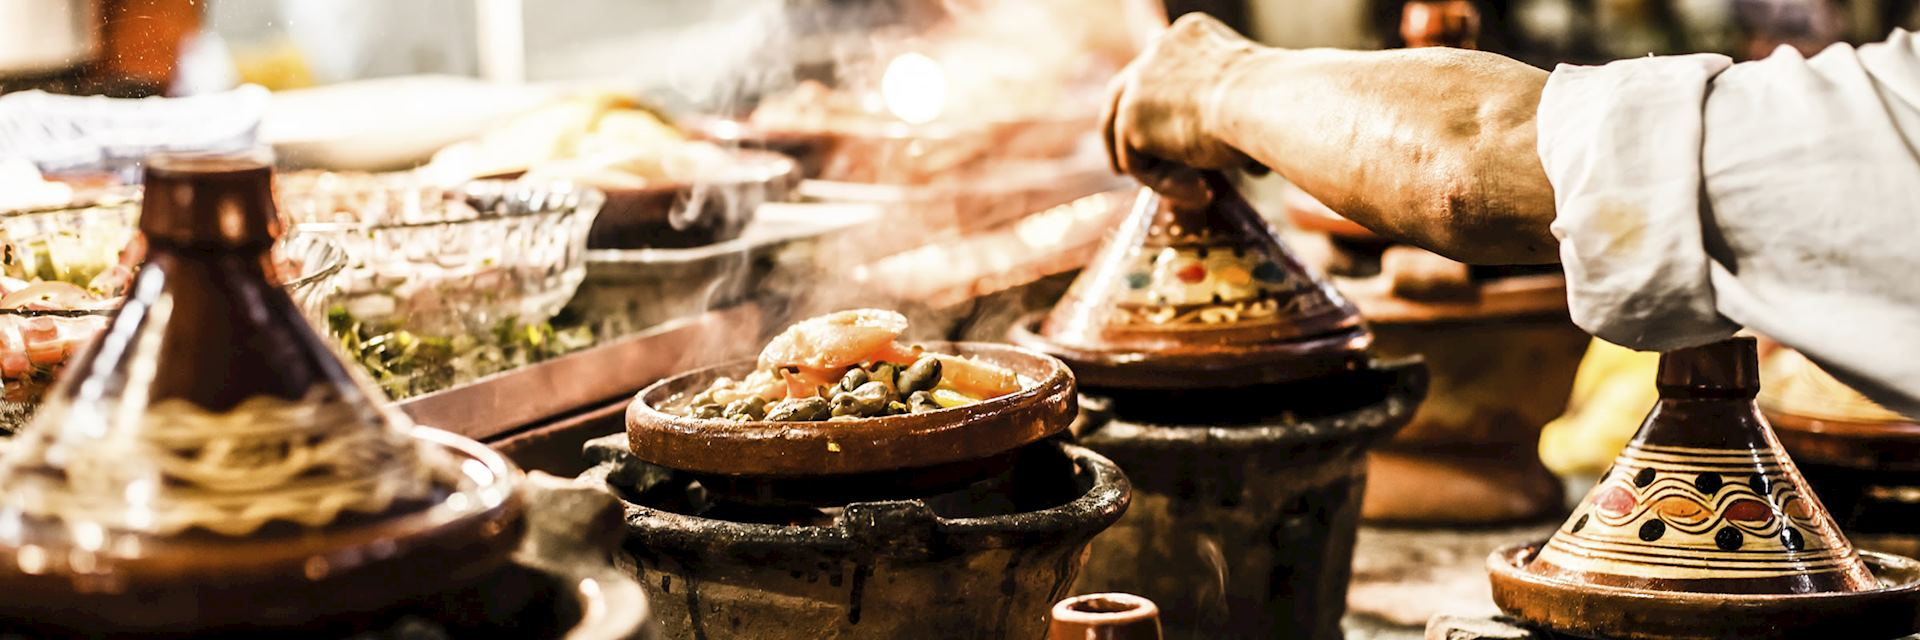 Traditional casserole dishes from Morocco